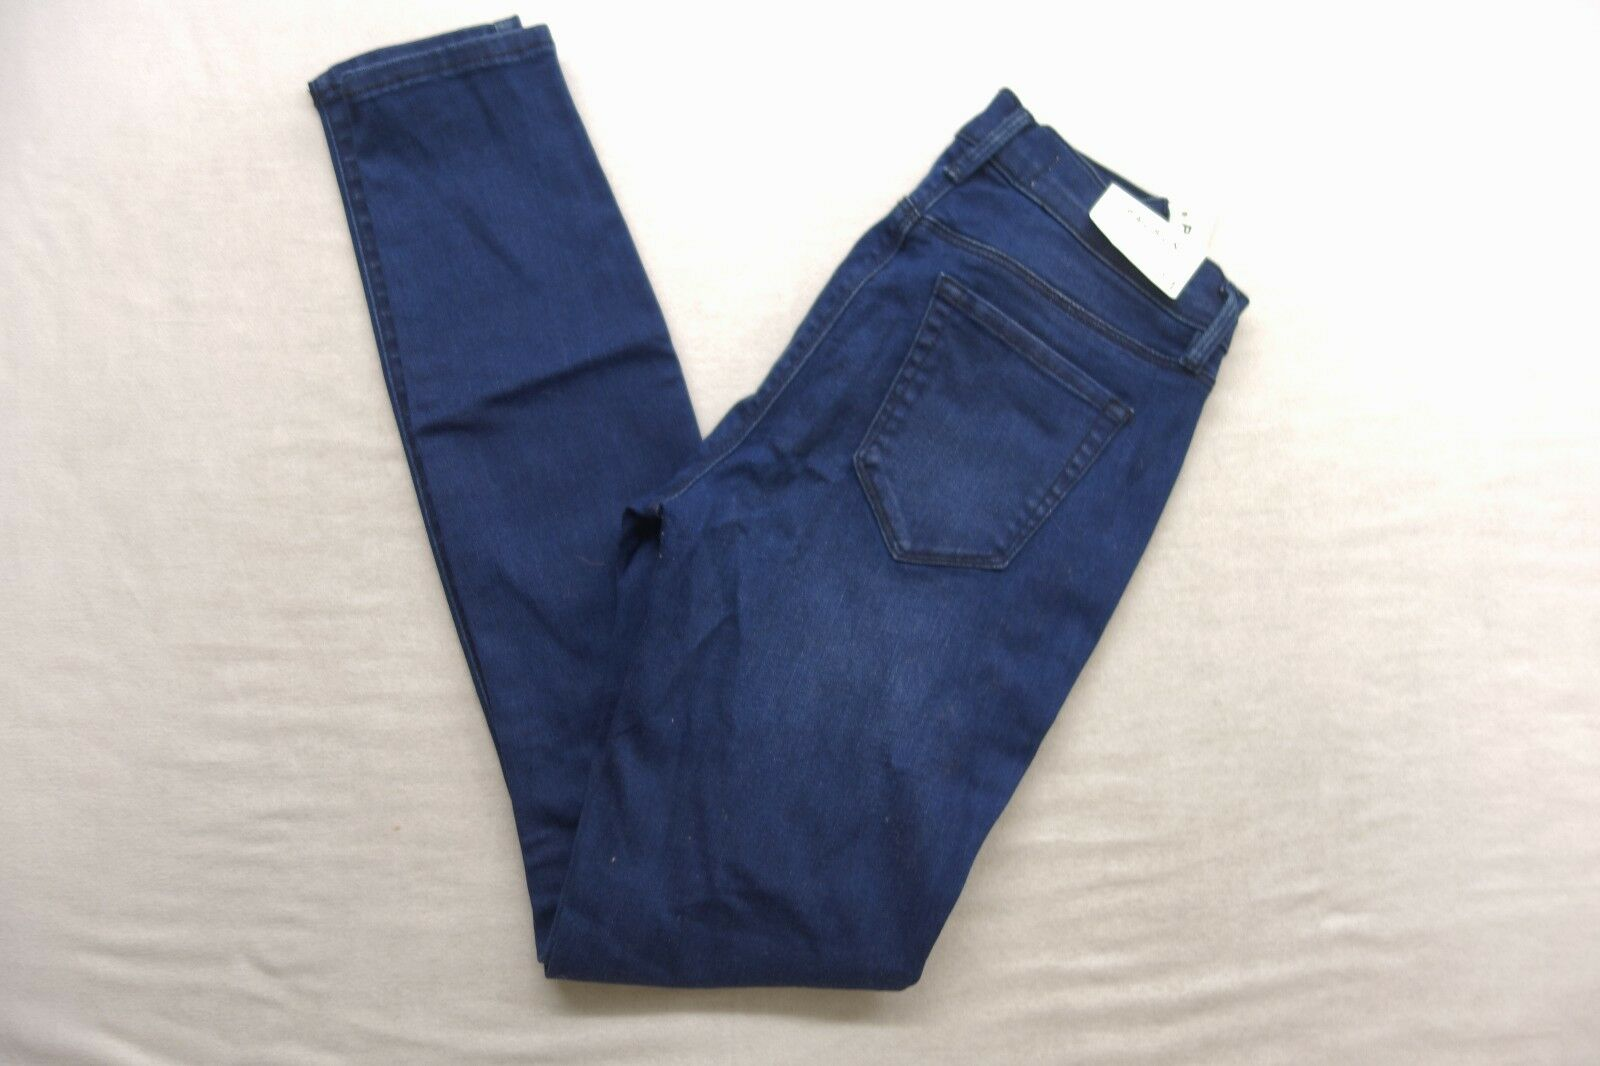 New Womens Pacsun Perfect Ankle Jegging Stretch Distressed Denim Jeans 24 x 30